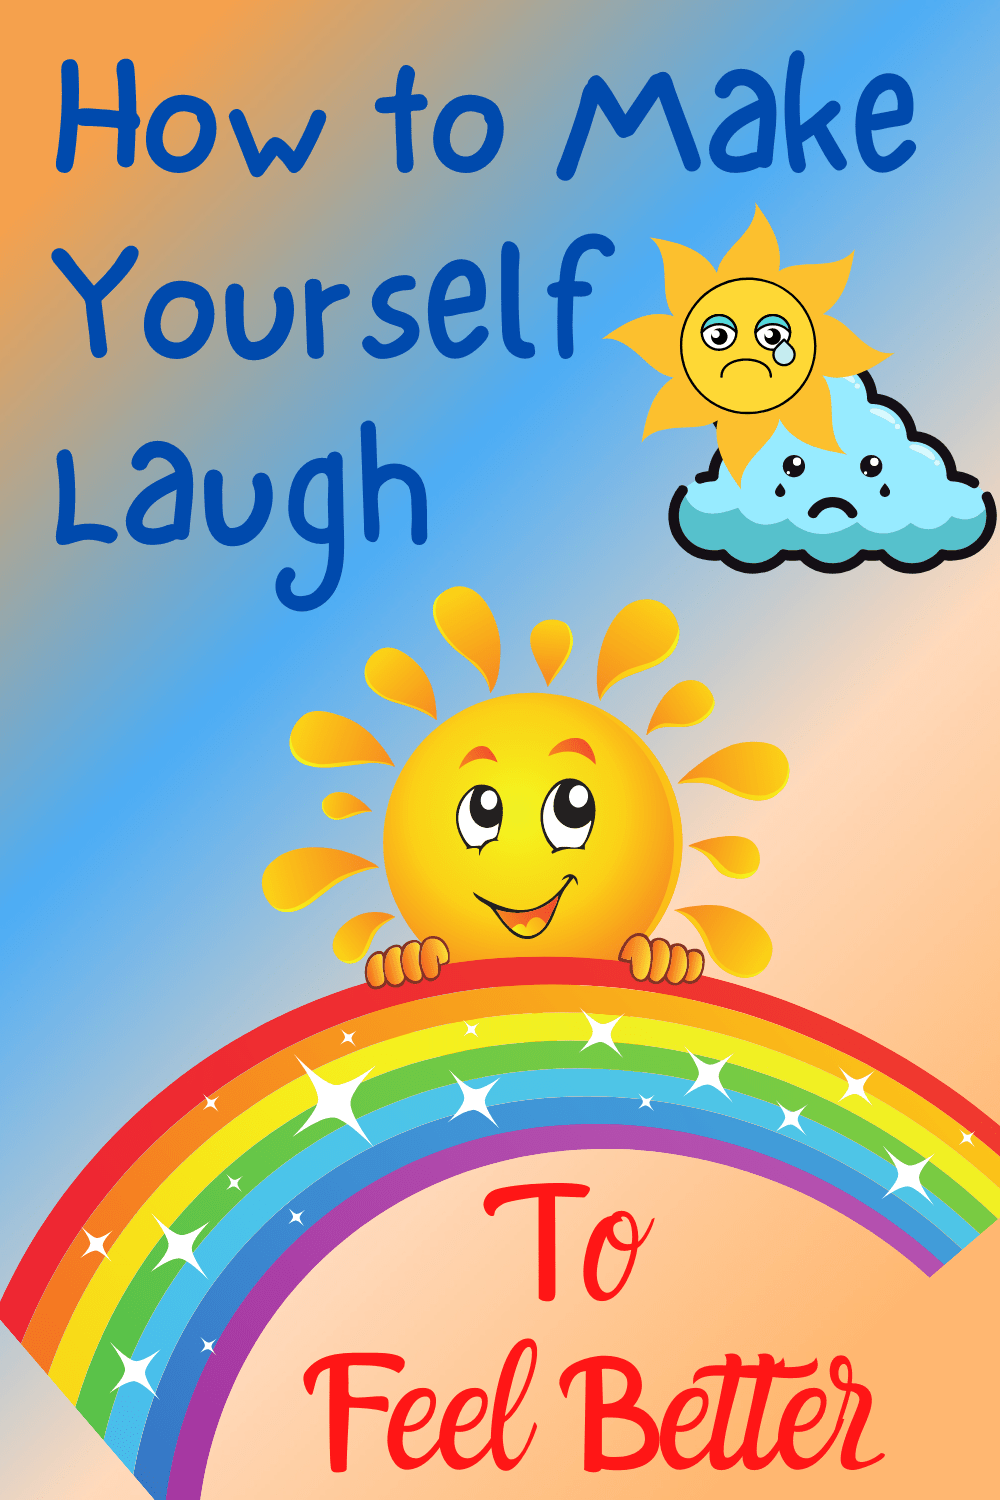 How to make yourself laugh